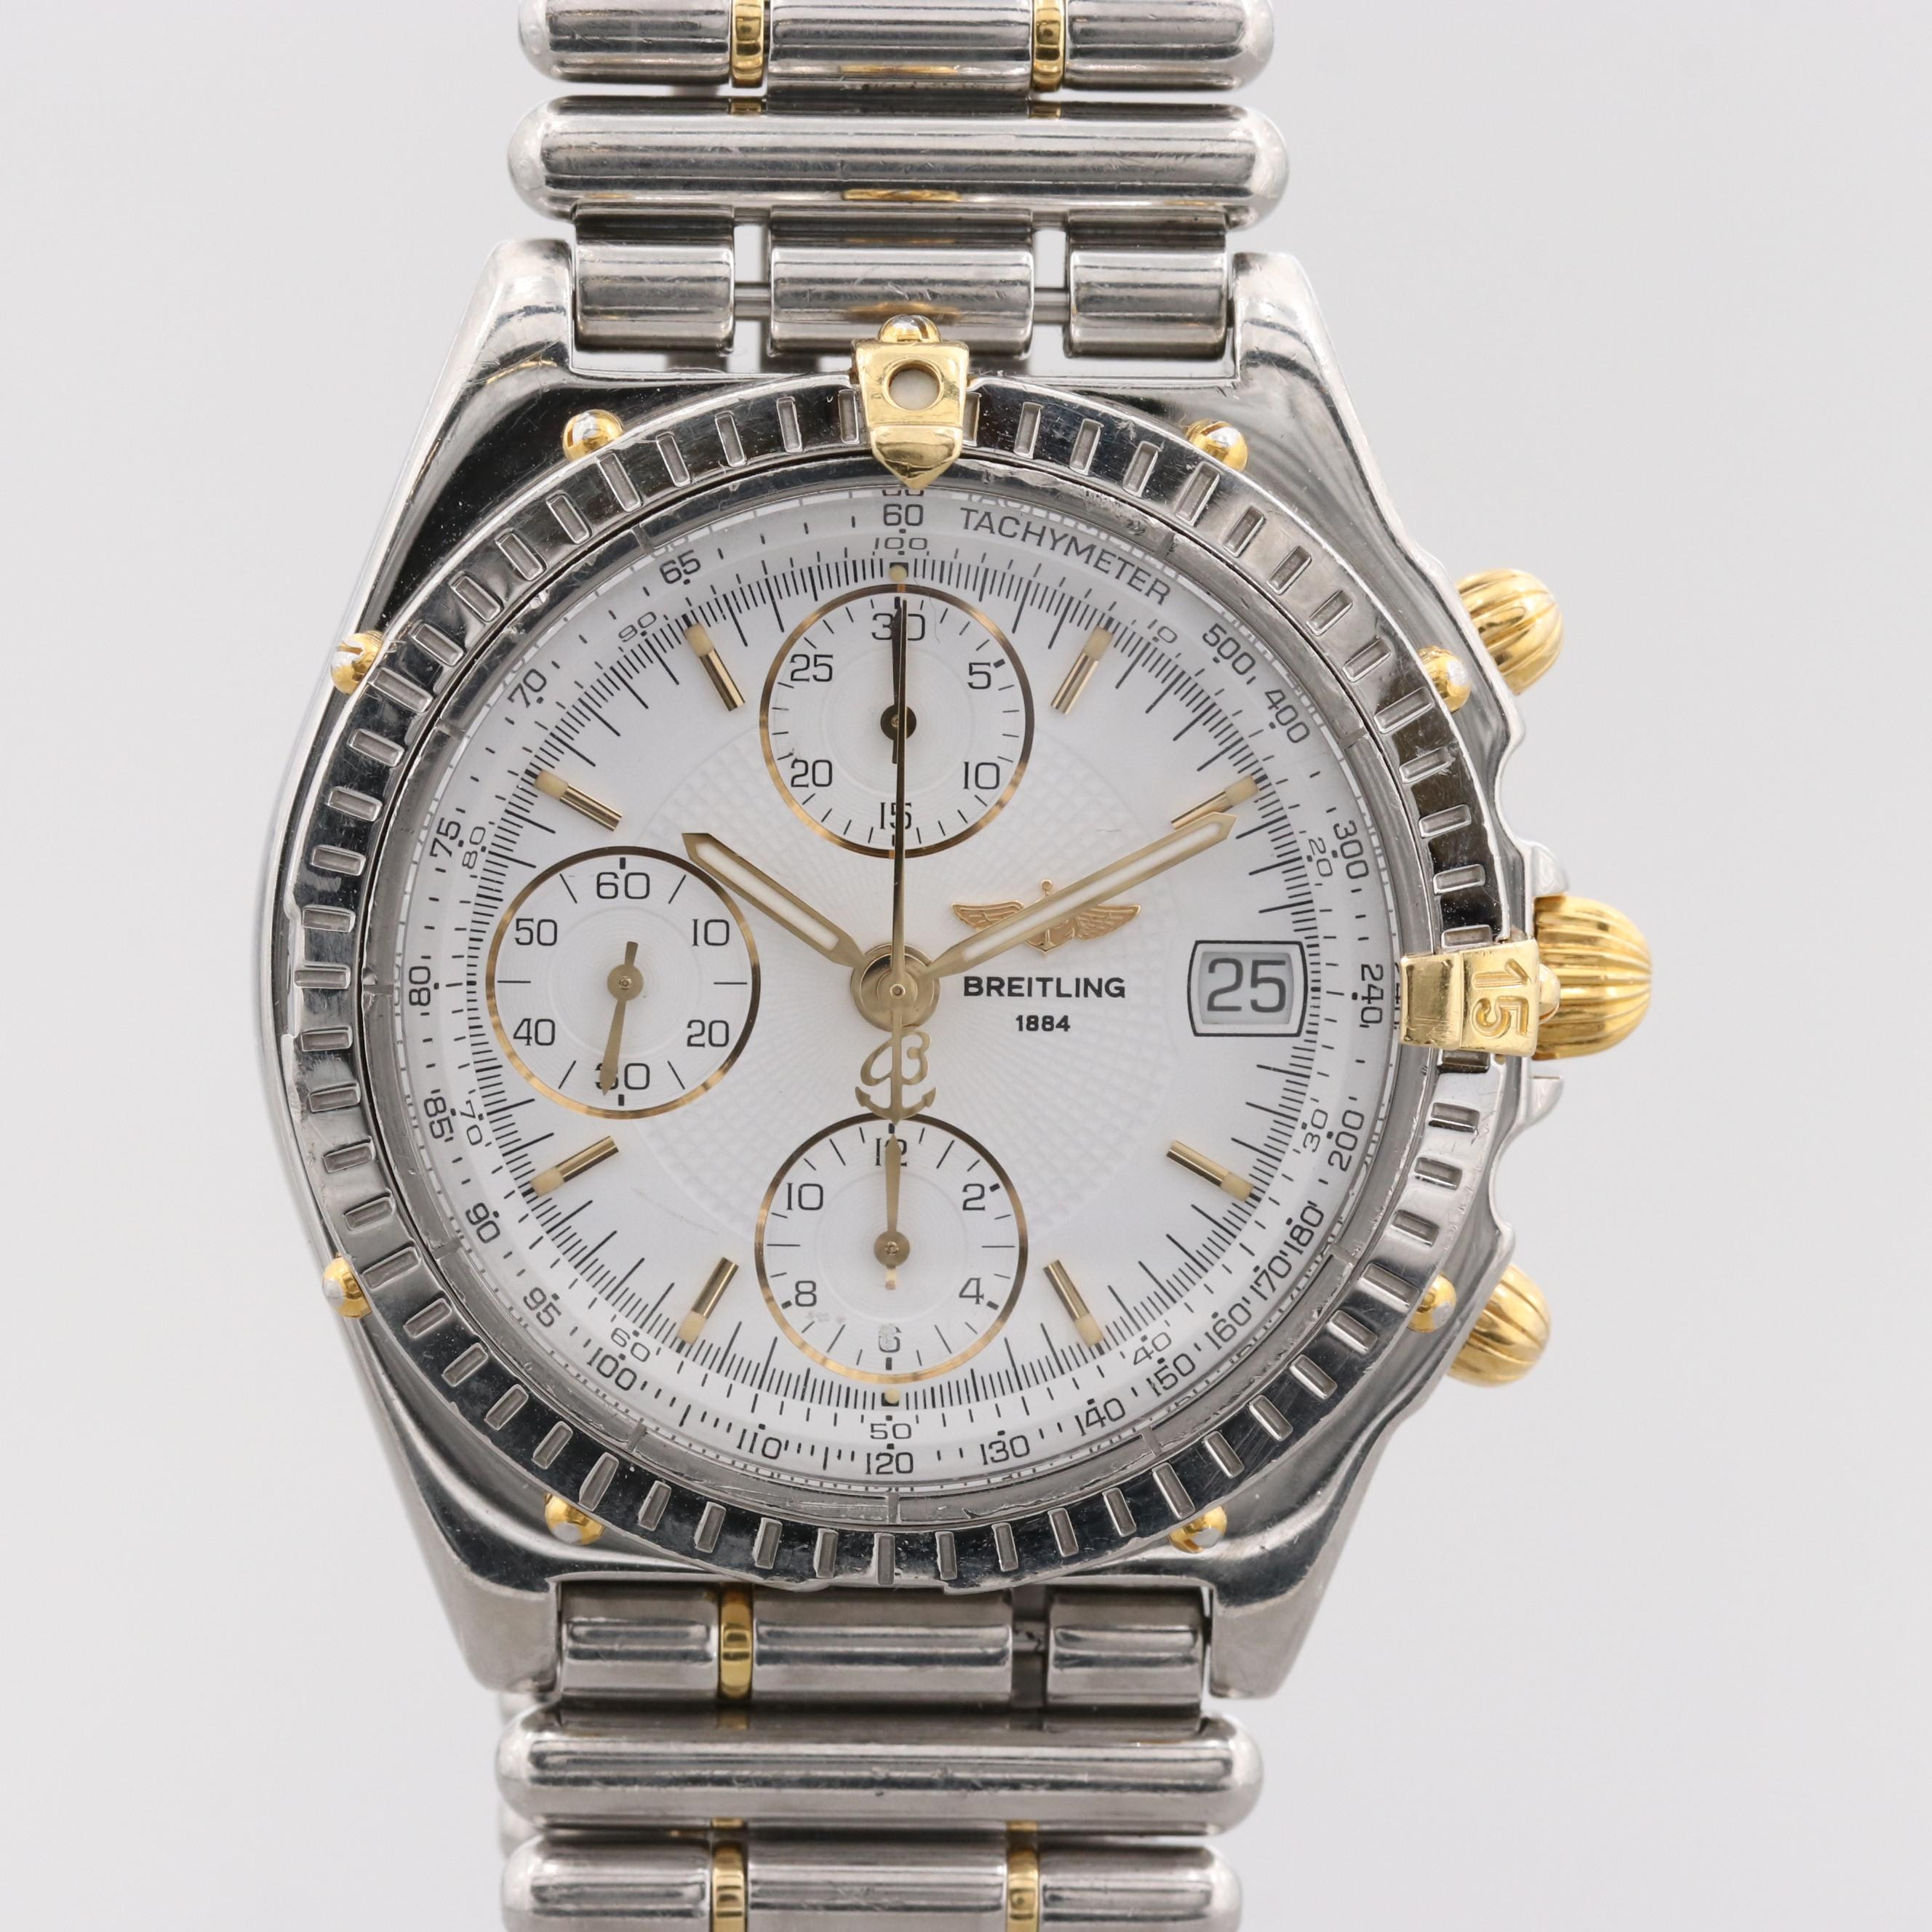 Breitling Chronomat Stainless Steel and 18K Yellow Gold Automatic Wristwatch